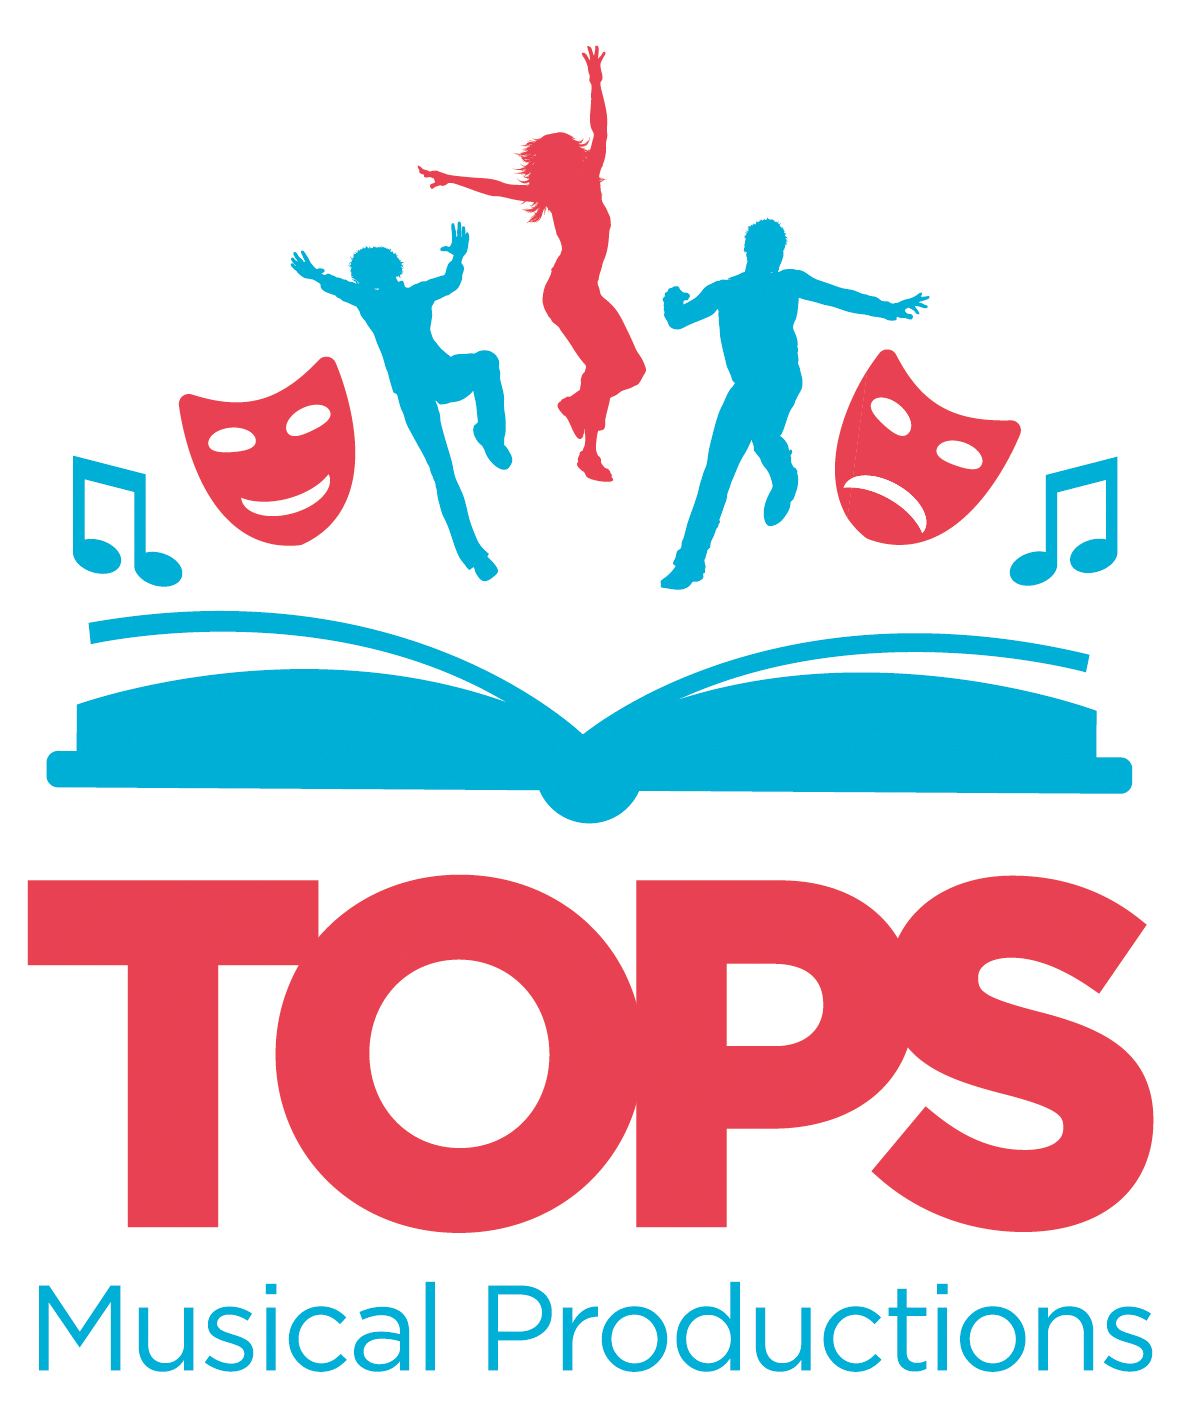 https://www.boostdigitalmedia.com/blog/project/logo-website-design-for-tops-musical-productions/